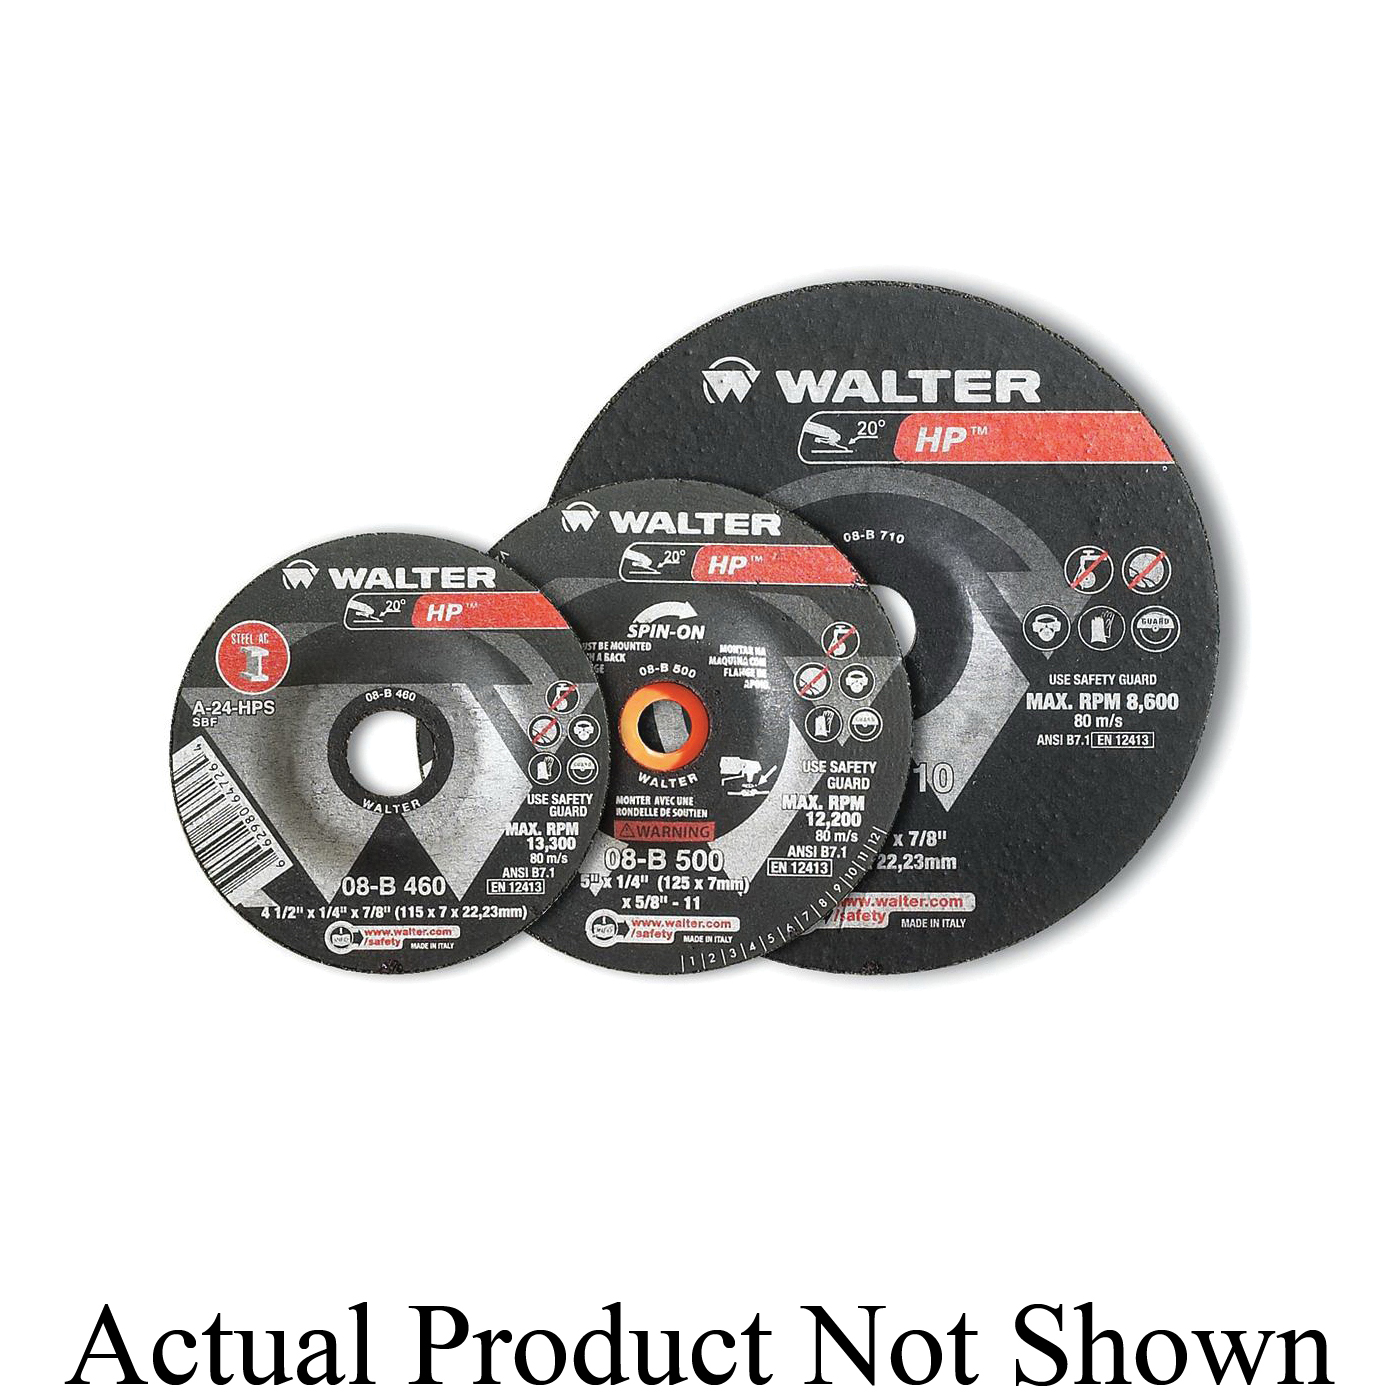 Walter Surface Technologies Enduro-Flex Stainless™ 06F608 06-F Close Spin-On Coated Flap Disc, 6 in Dia Disc, 80 Grit, Medium Grade, Zirconia Alumina Abrasive, Type 27S Disc